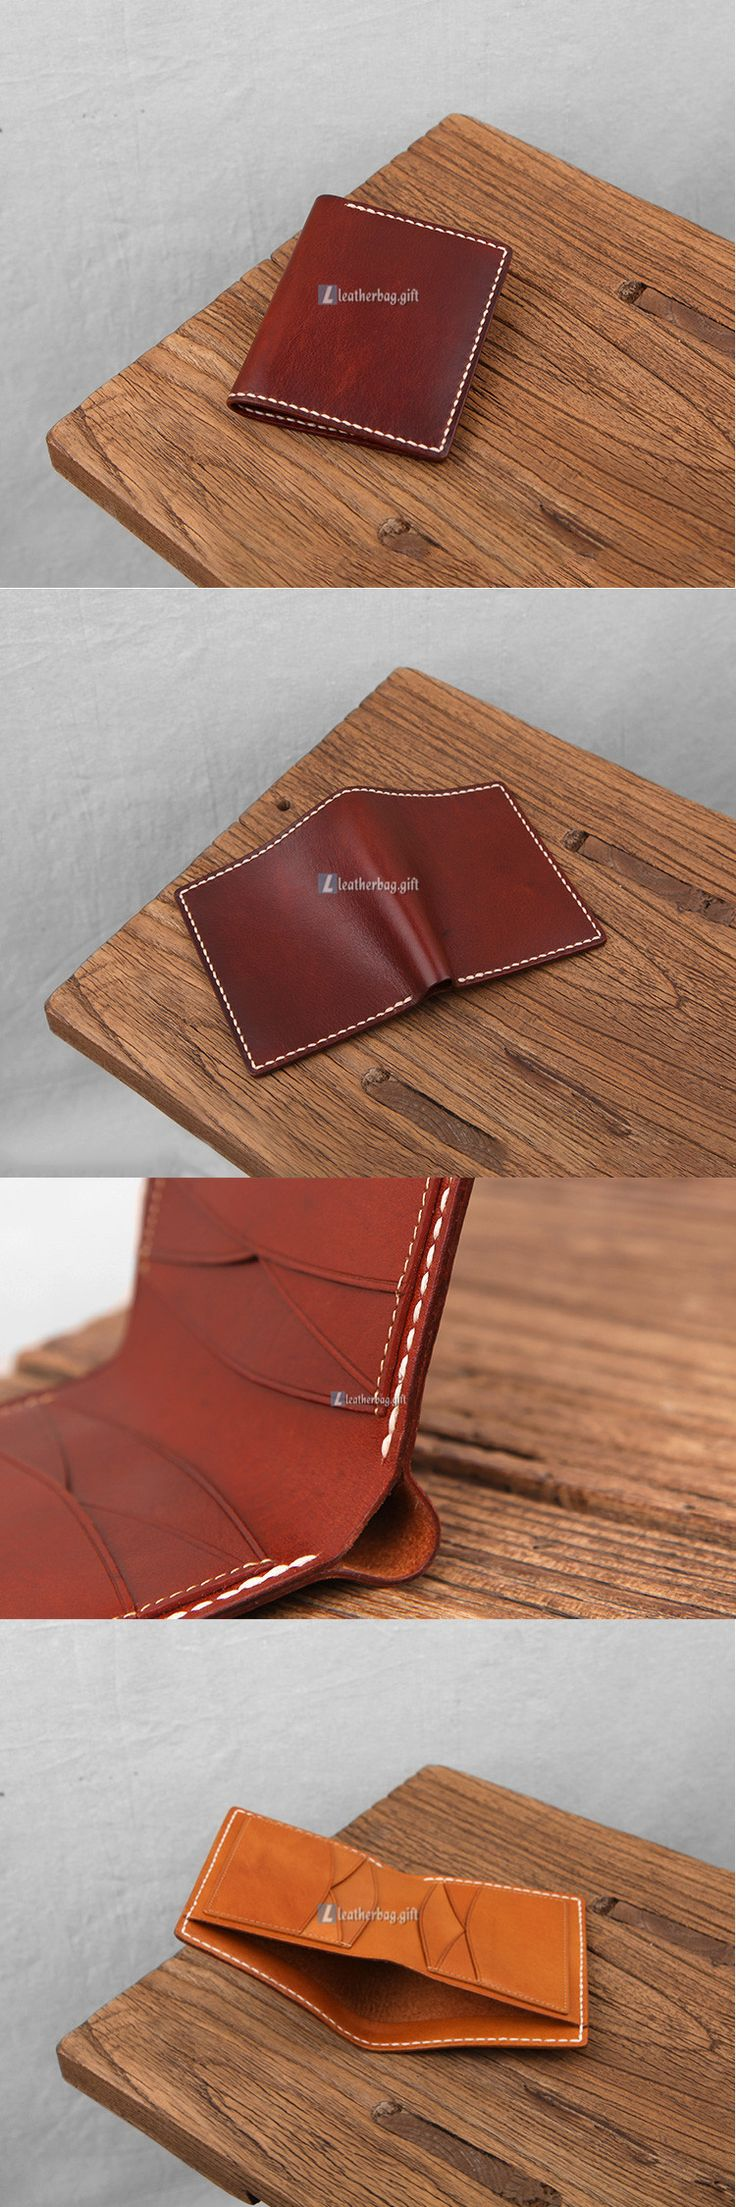 $144.60 Brown Leather Wallet Purse